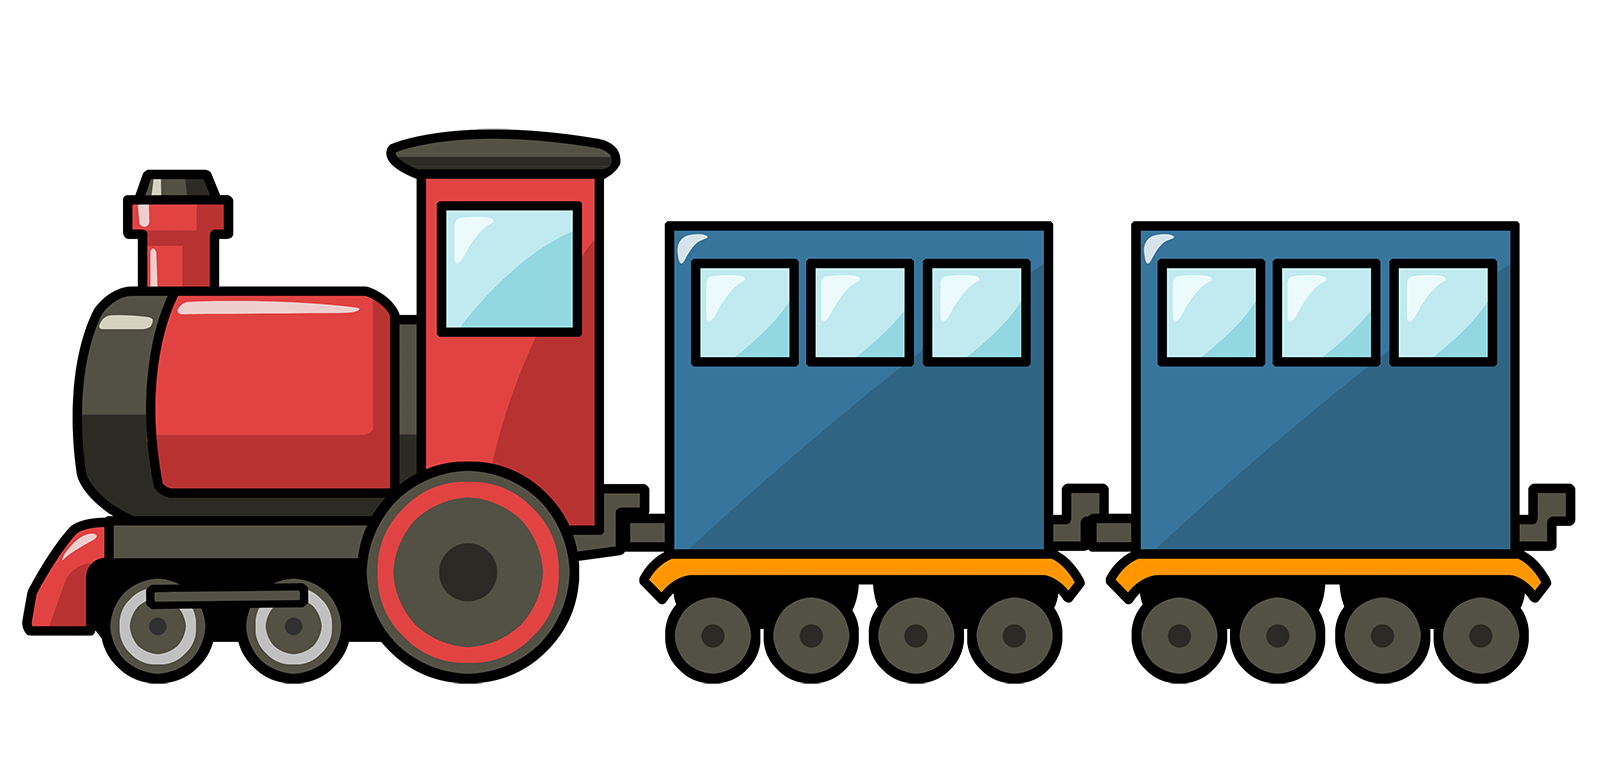 1000  images about Cartoon Tr - Toy Train Clipart